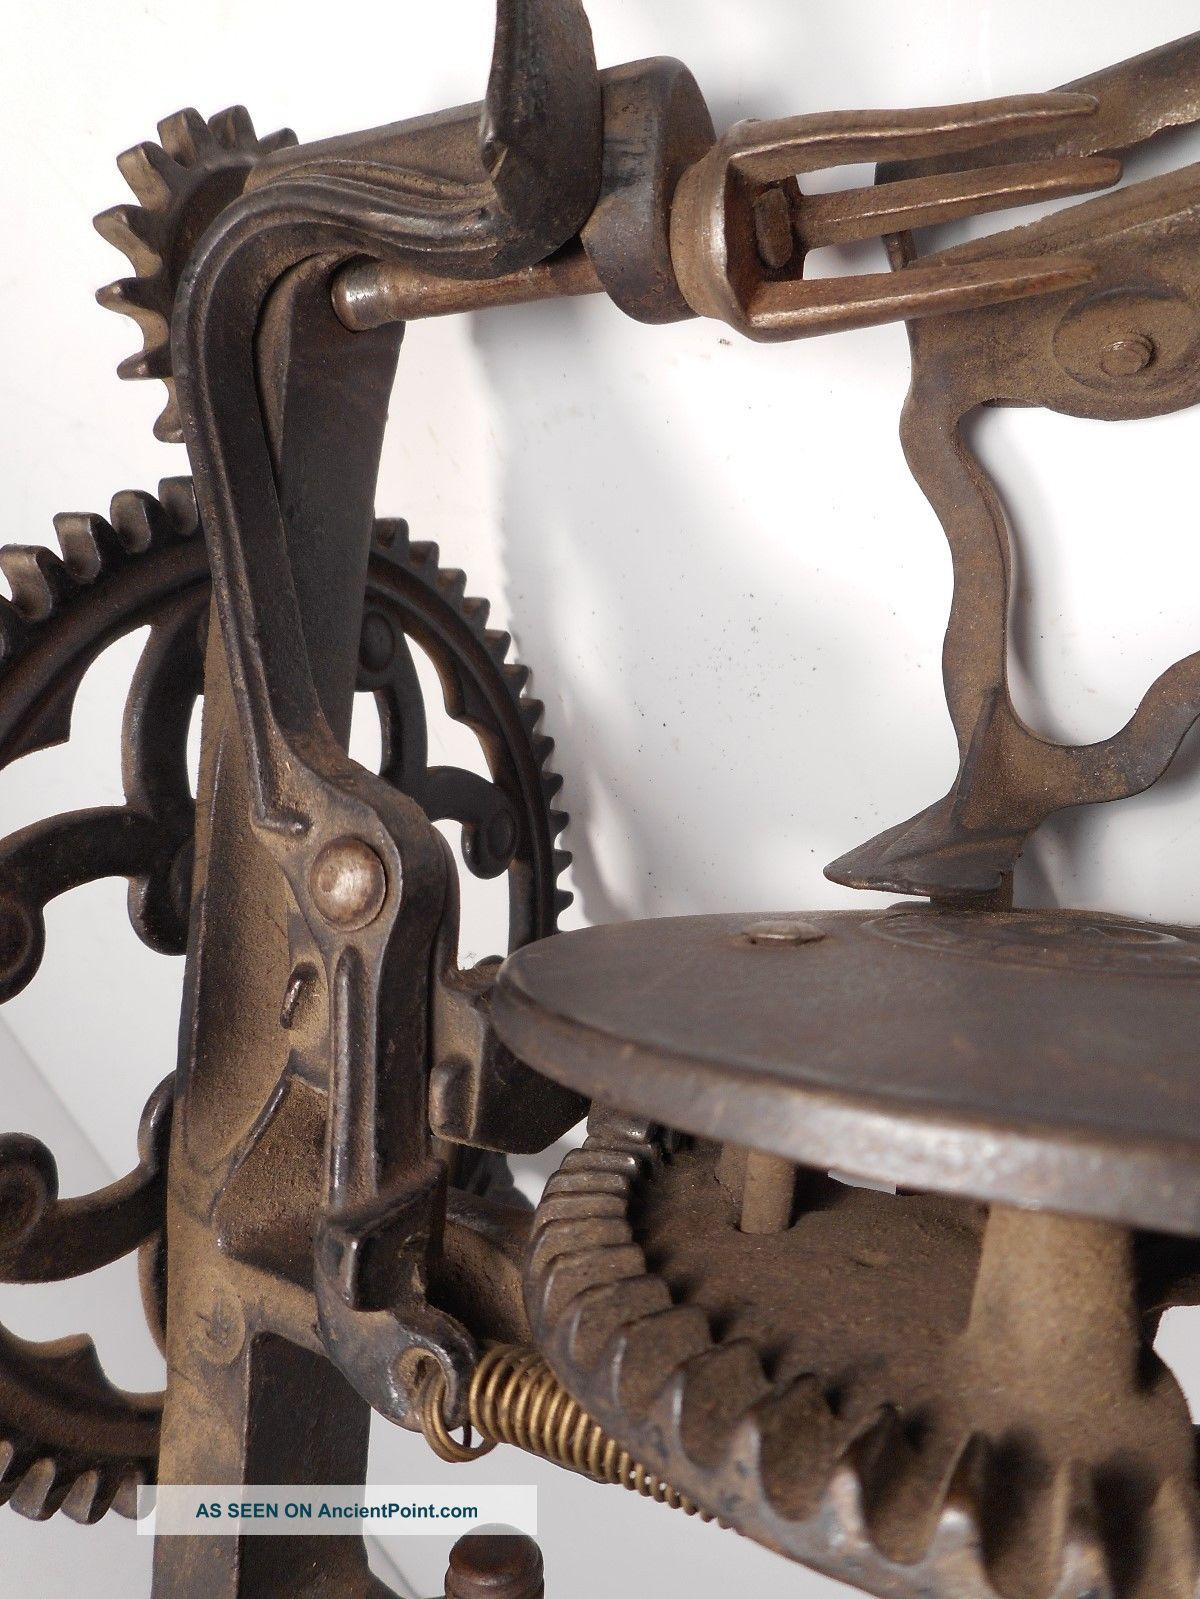 Antique Harbster Bros Apple Peeler / Parer Patent May 5th 1868 Cast Iron Rare Other Antique Home & Hearth photo